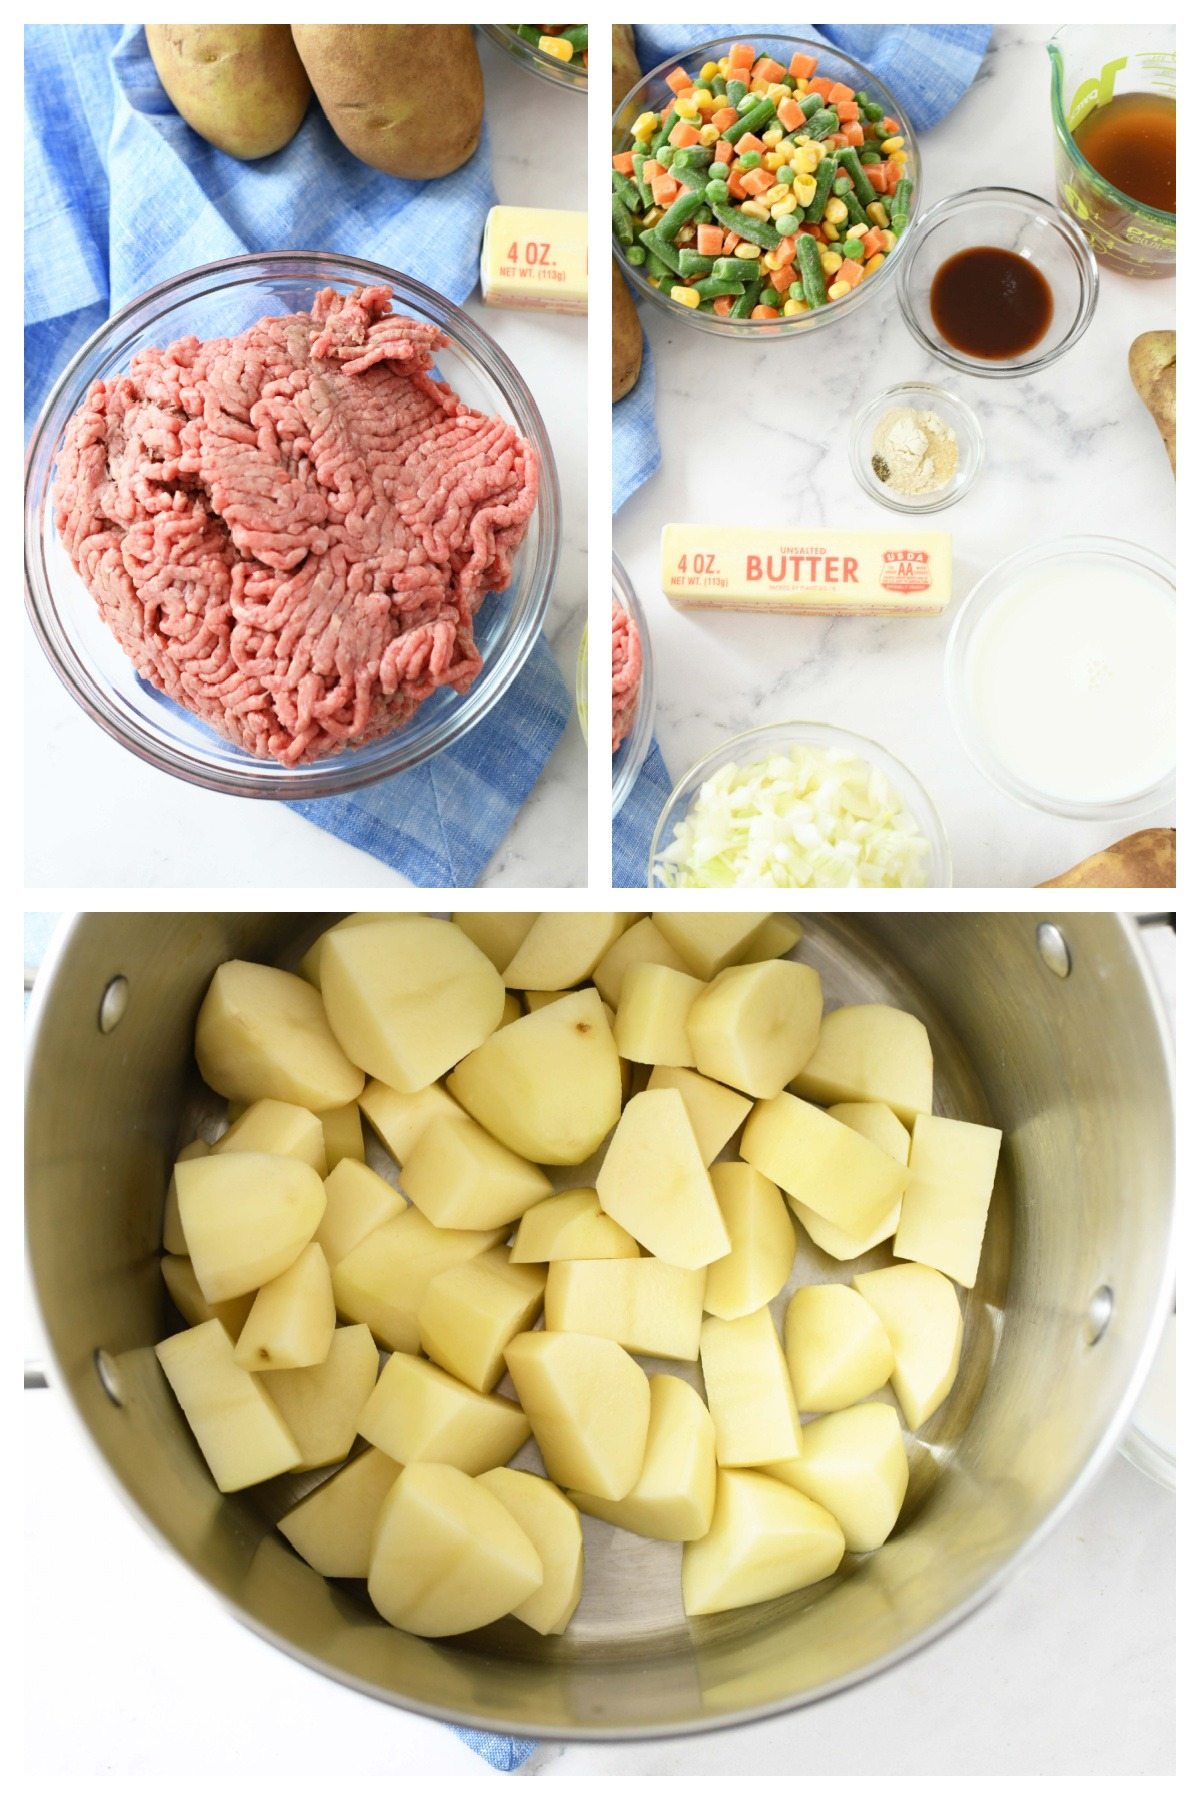 Cottage Pie Recipe steps. This is a 3 image collage showing the ingredients needed for this recipe.